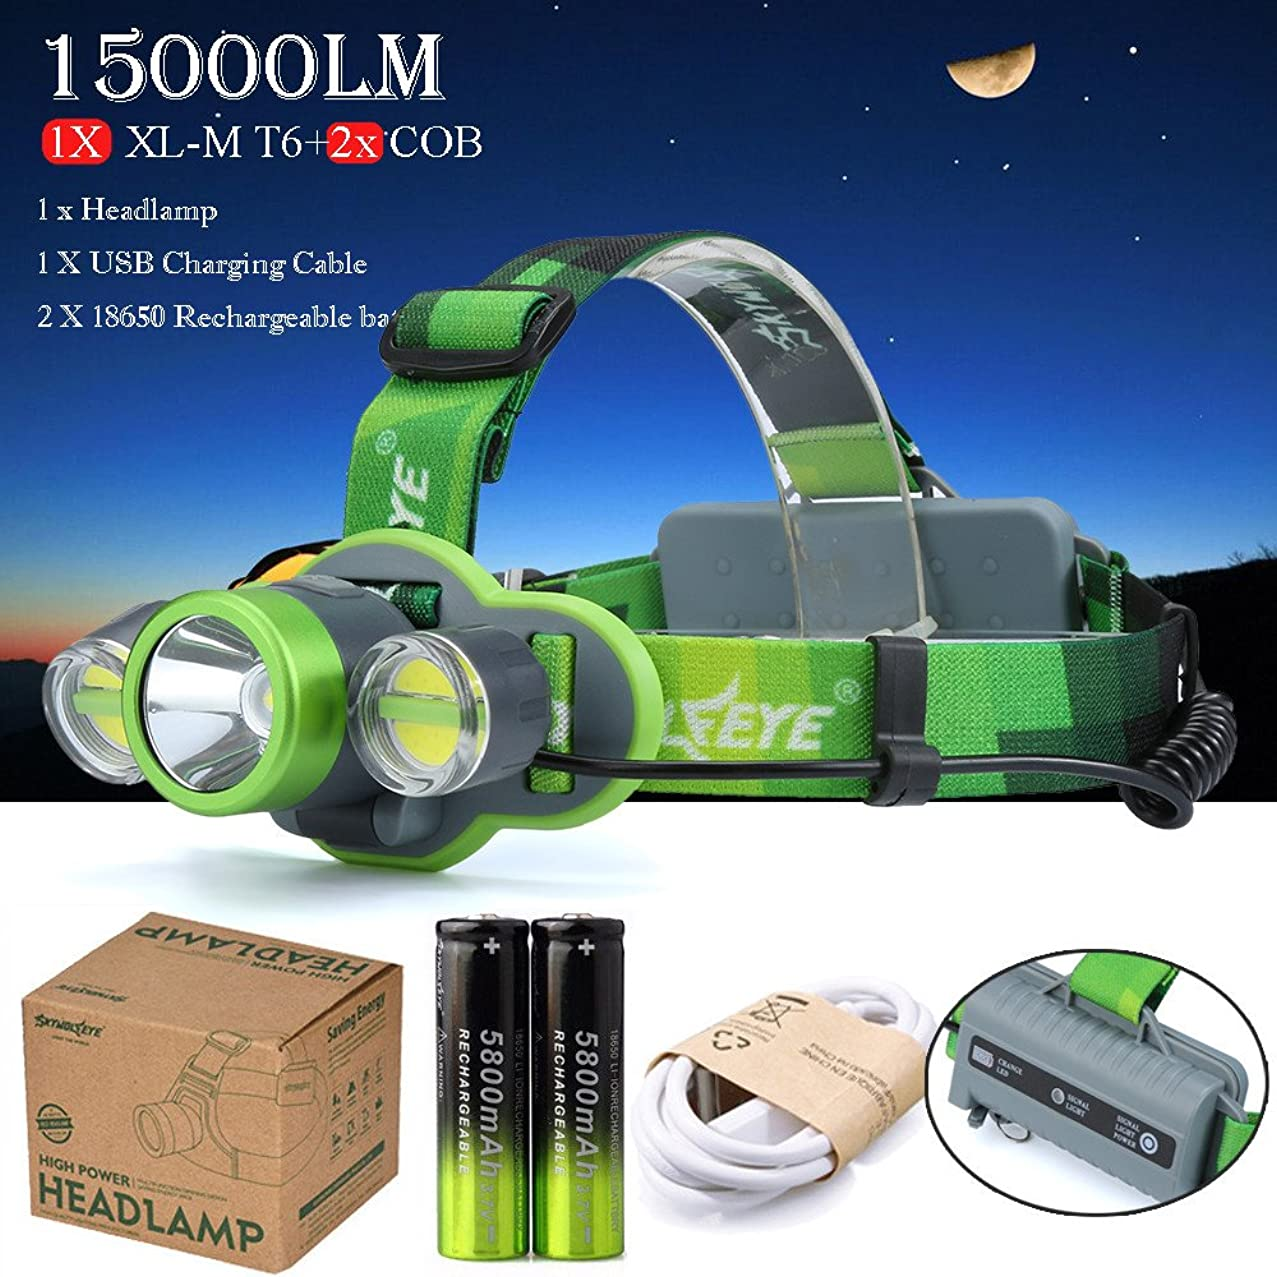 Rechargeable LED Headlamp Brightest 4 Models T6+2x COB 15000 Lumens LED Headlight Waterproof Flashlight with 18650 Rechargable Battery Adjustable Headband Good for Camping Hiking Hunting Fishing